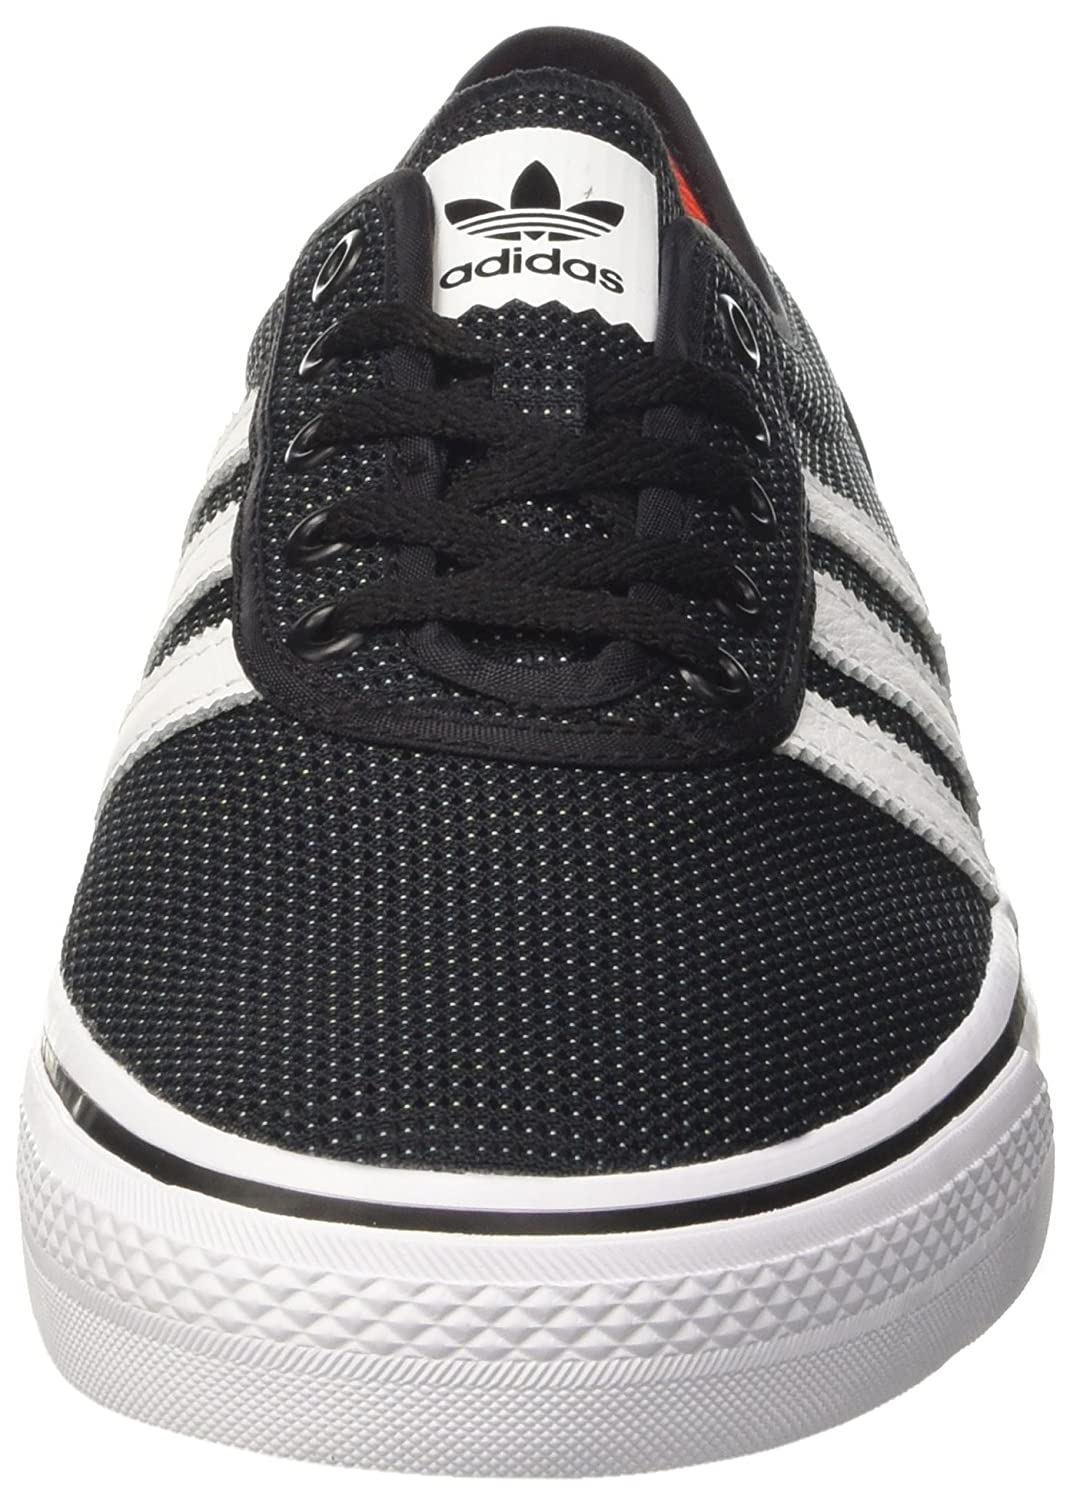 Adulto Amazon Ease Adi it da adidas Skateboard Scarpe Unisex PTWzYP5qp